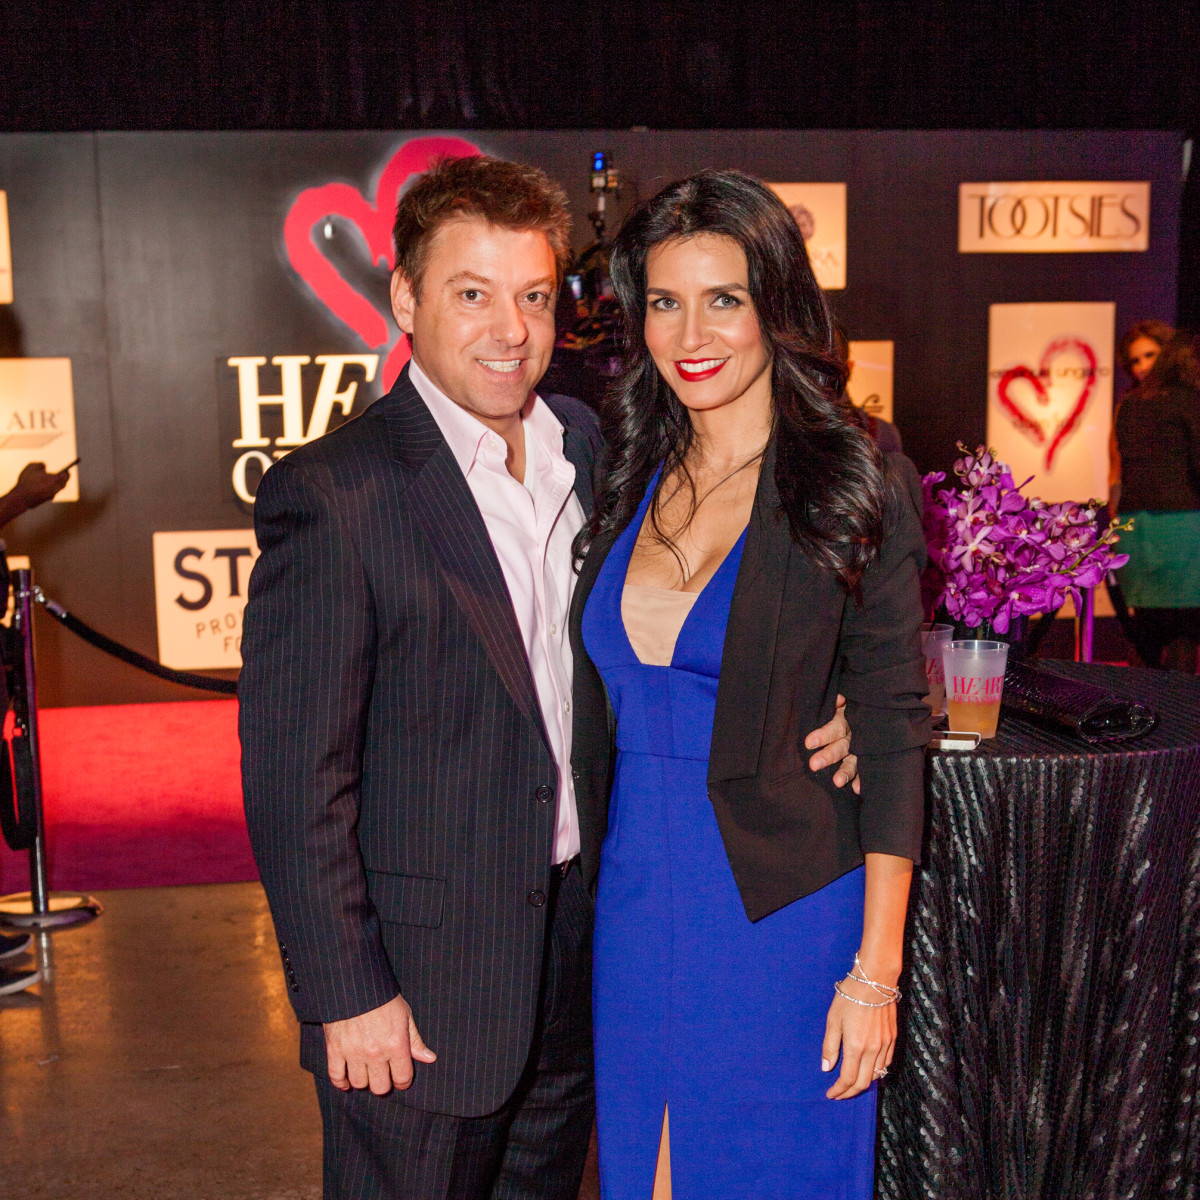 Heart of Fashion Hank Fasthoff and Maya Fasthoff